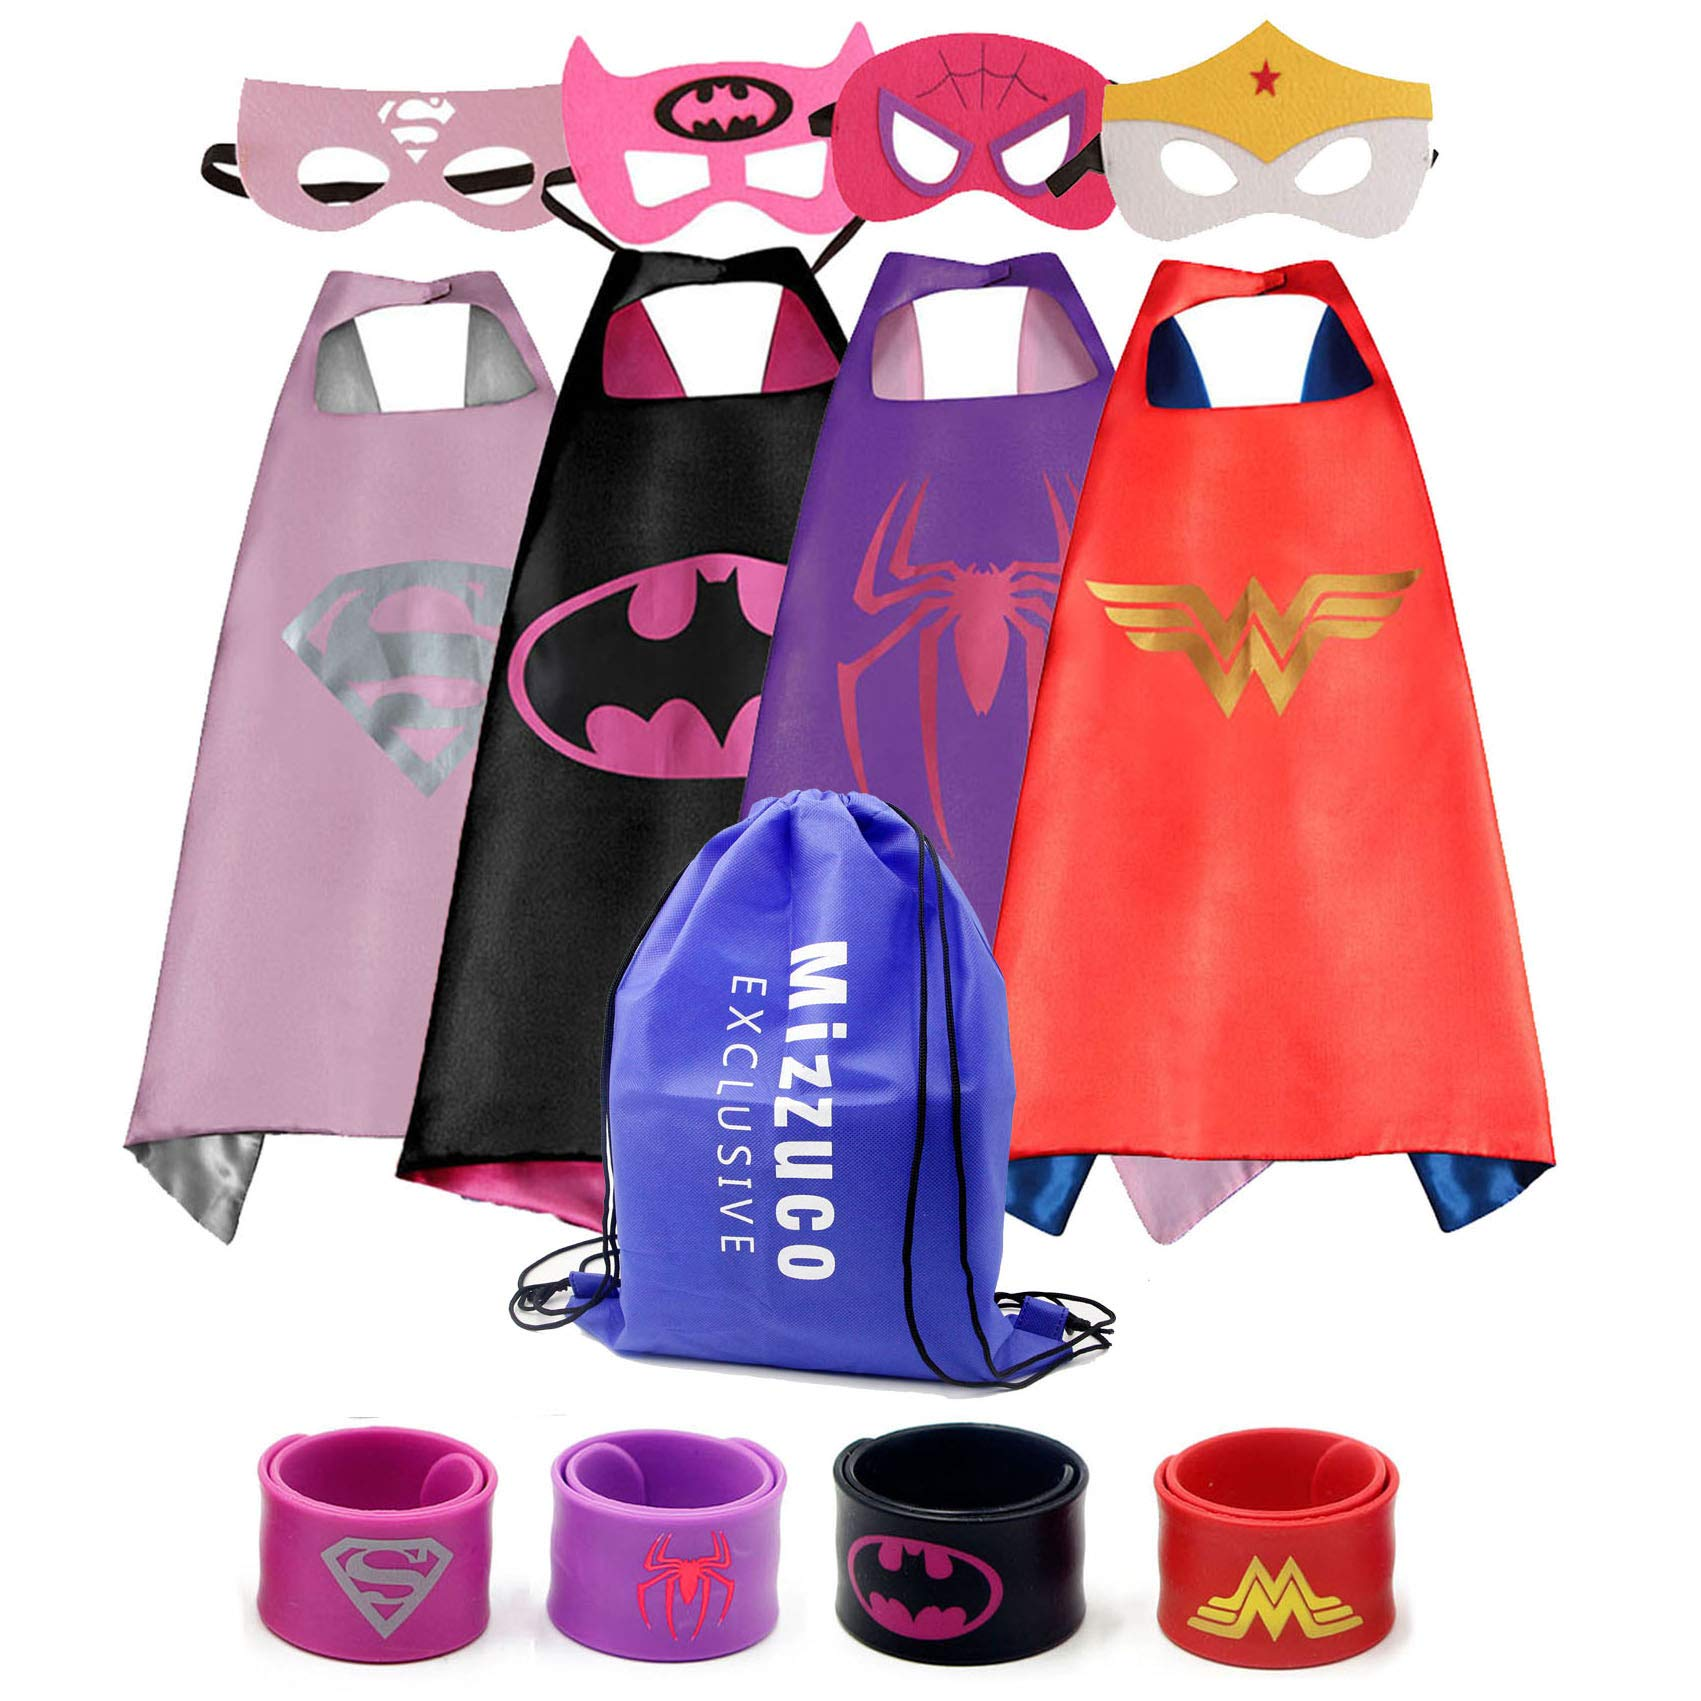 Mizzuco Kids Cartoon Dress up Costumes Satin Capes with Felt Masks and Exclusive Bag for Copslay Birthday Party (4pcs Cape for Girls) by Mizzuco